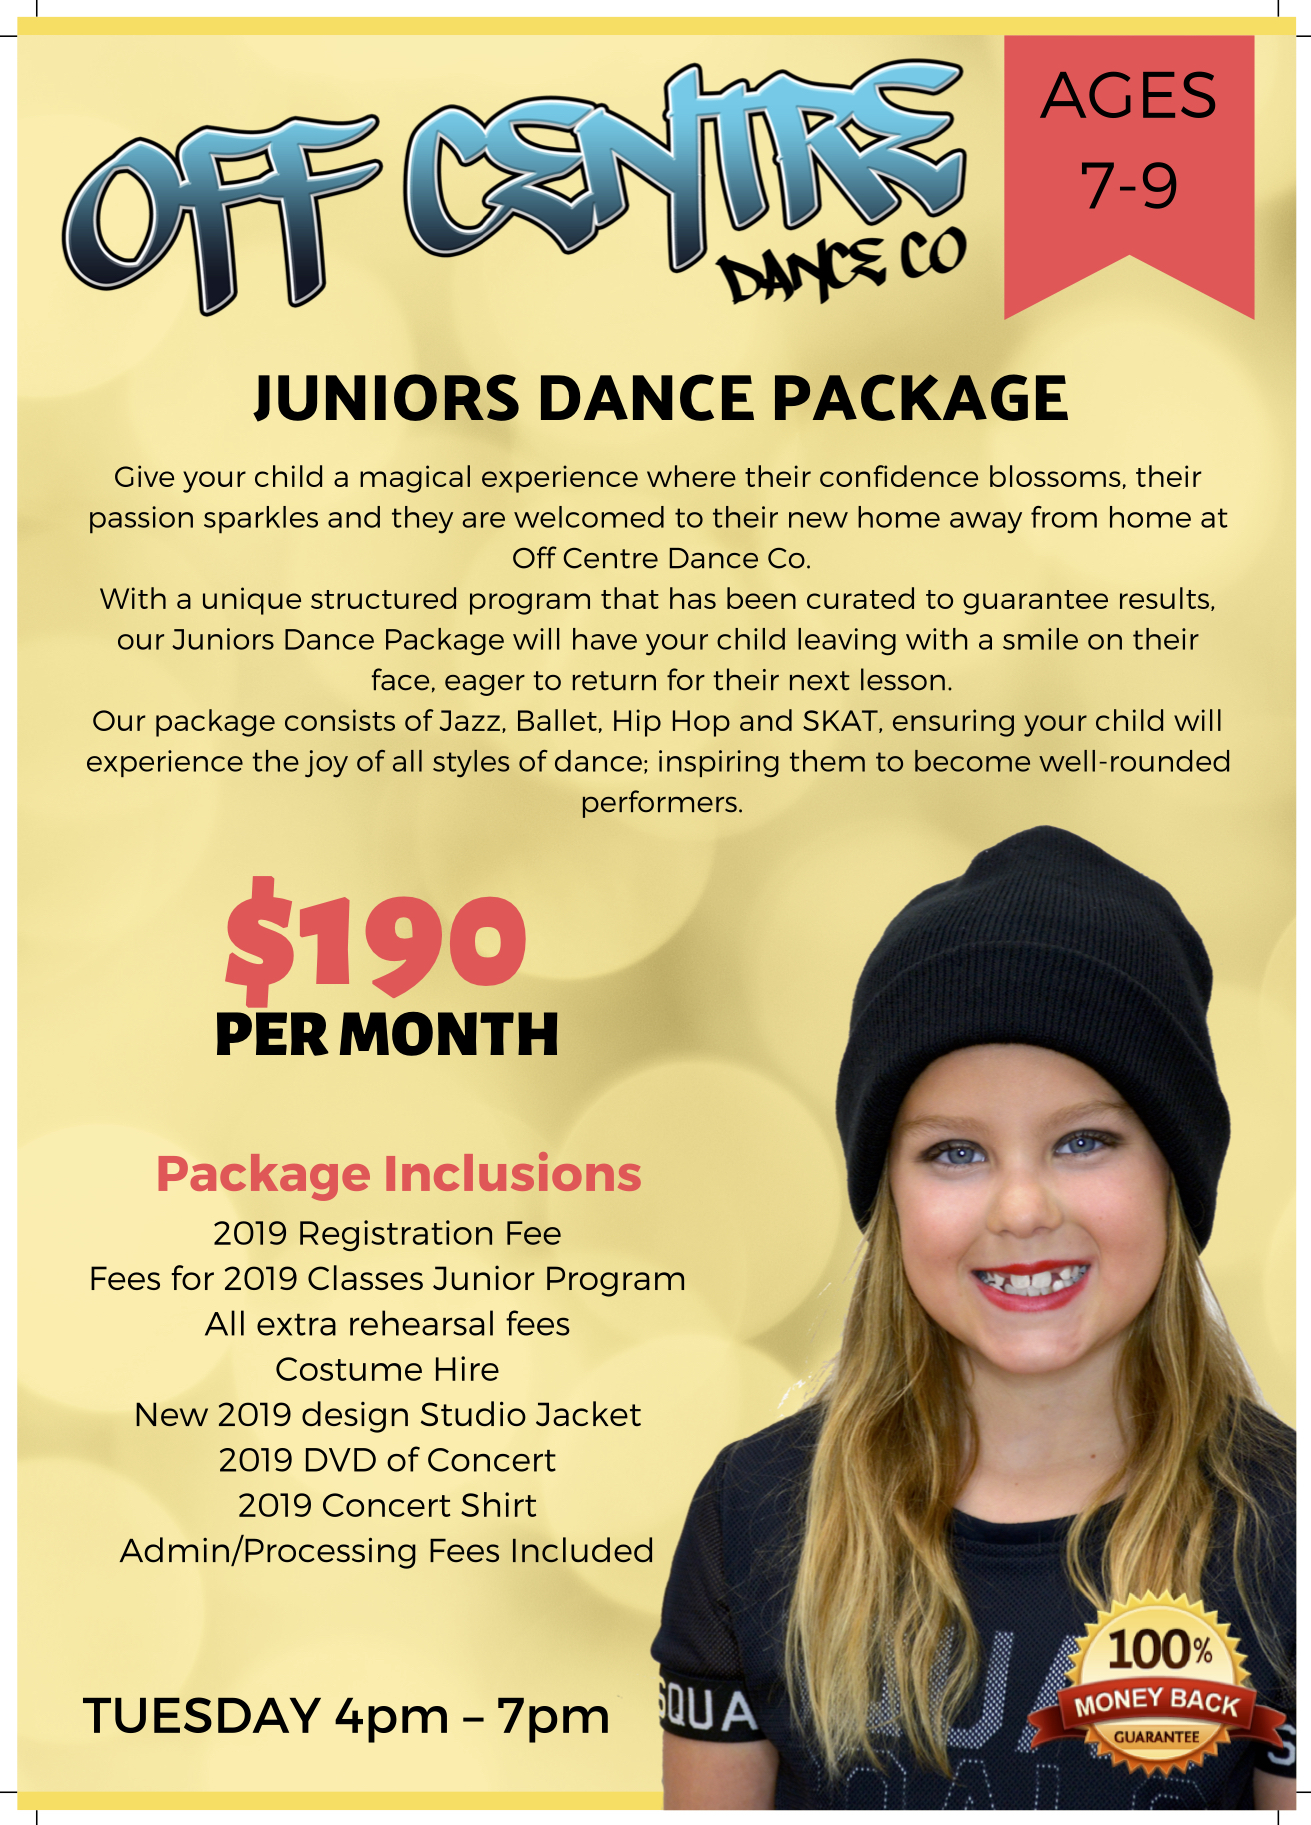 JUNIORS DANCE PACKAGE.jpg